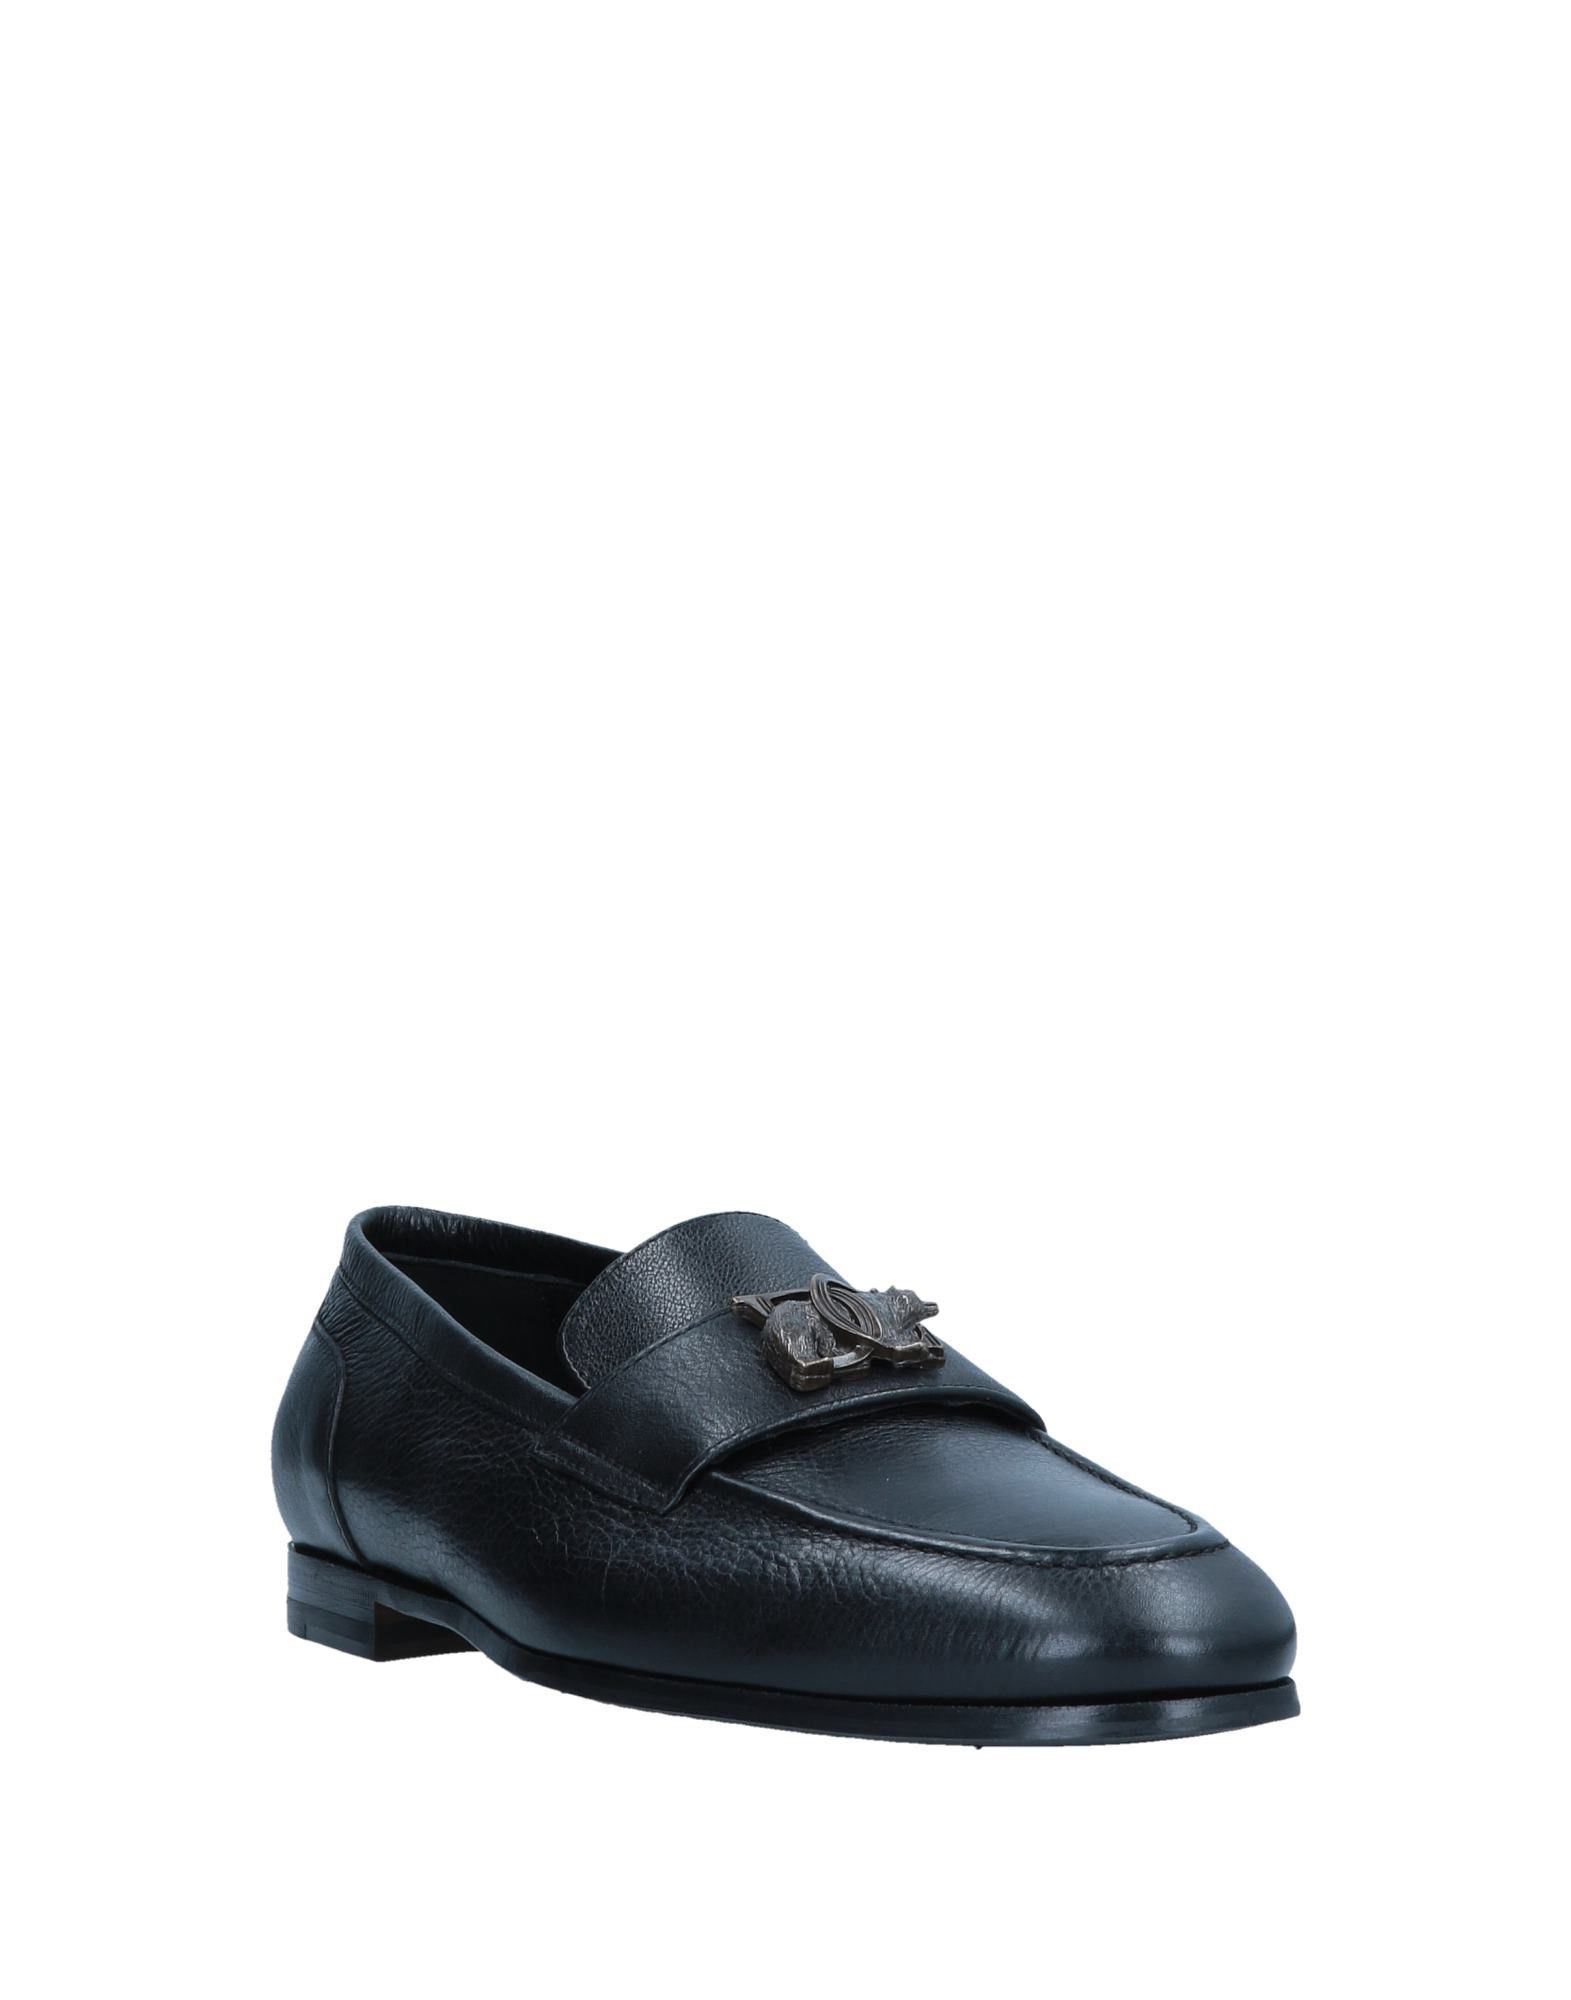 Dsquared2 Loafers - Men Dsquared2 Australia Loafers online on  Australia Dsquared2 - 11555867EE d0ceeb